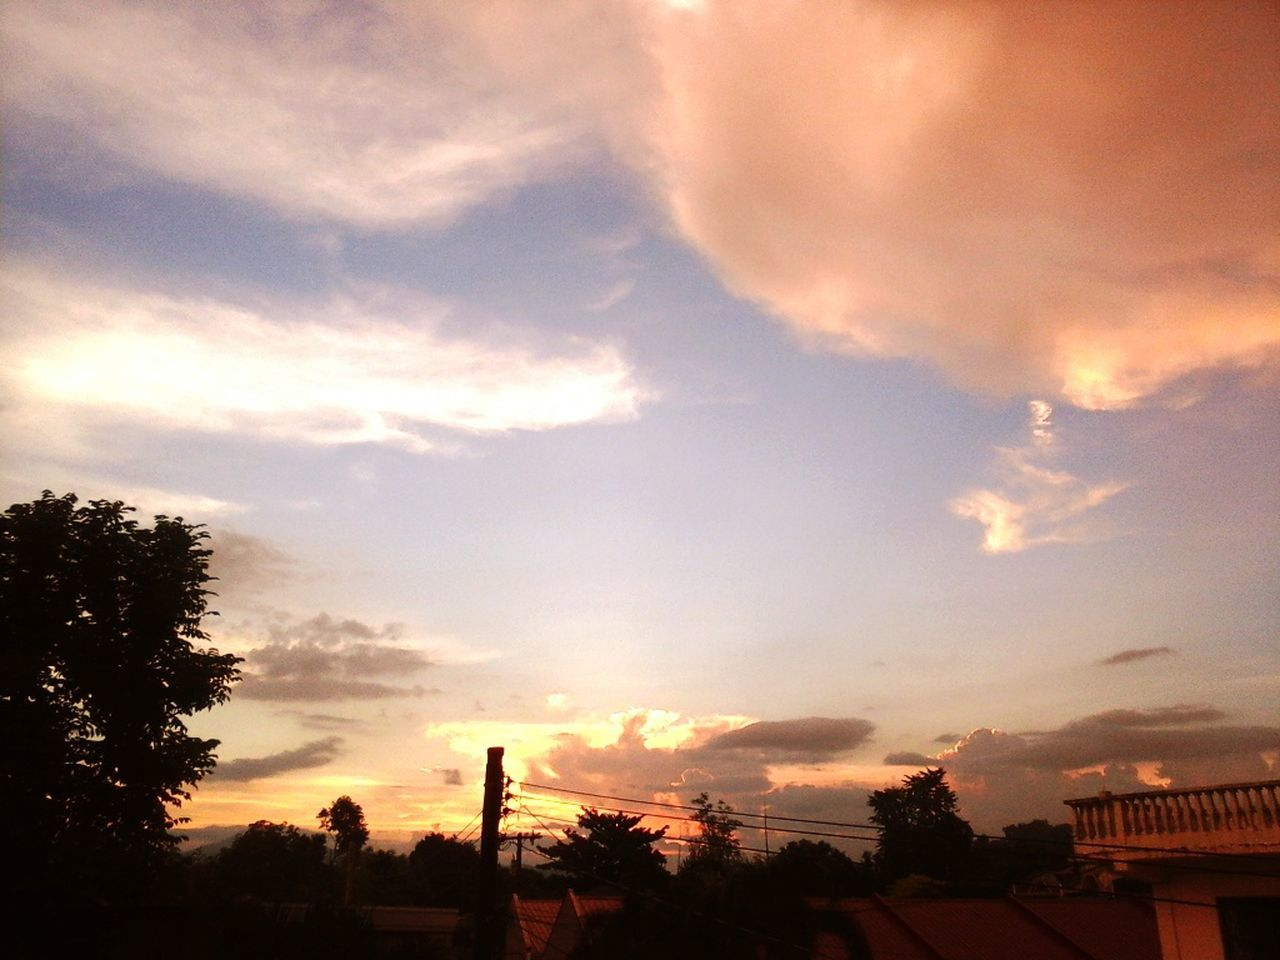 cloud - sky, sky, sunset, tree, silhouette, nature, beauty in nature, no people, scenics, outdoors, low angle view, built structure, tranquility, building exterior, architecture, day